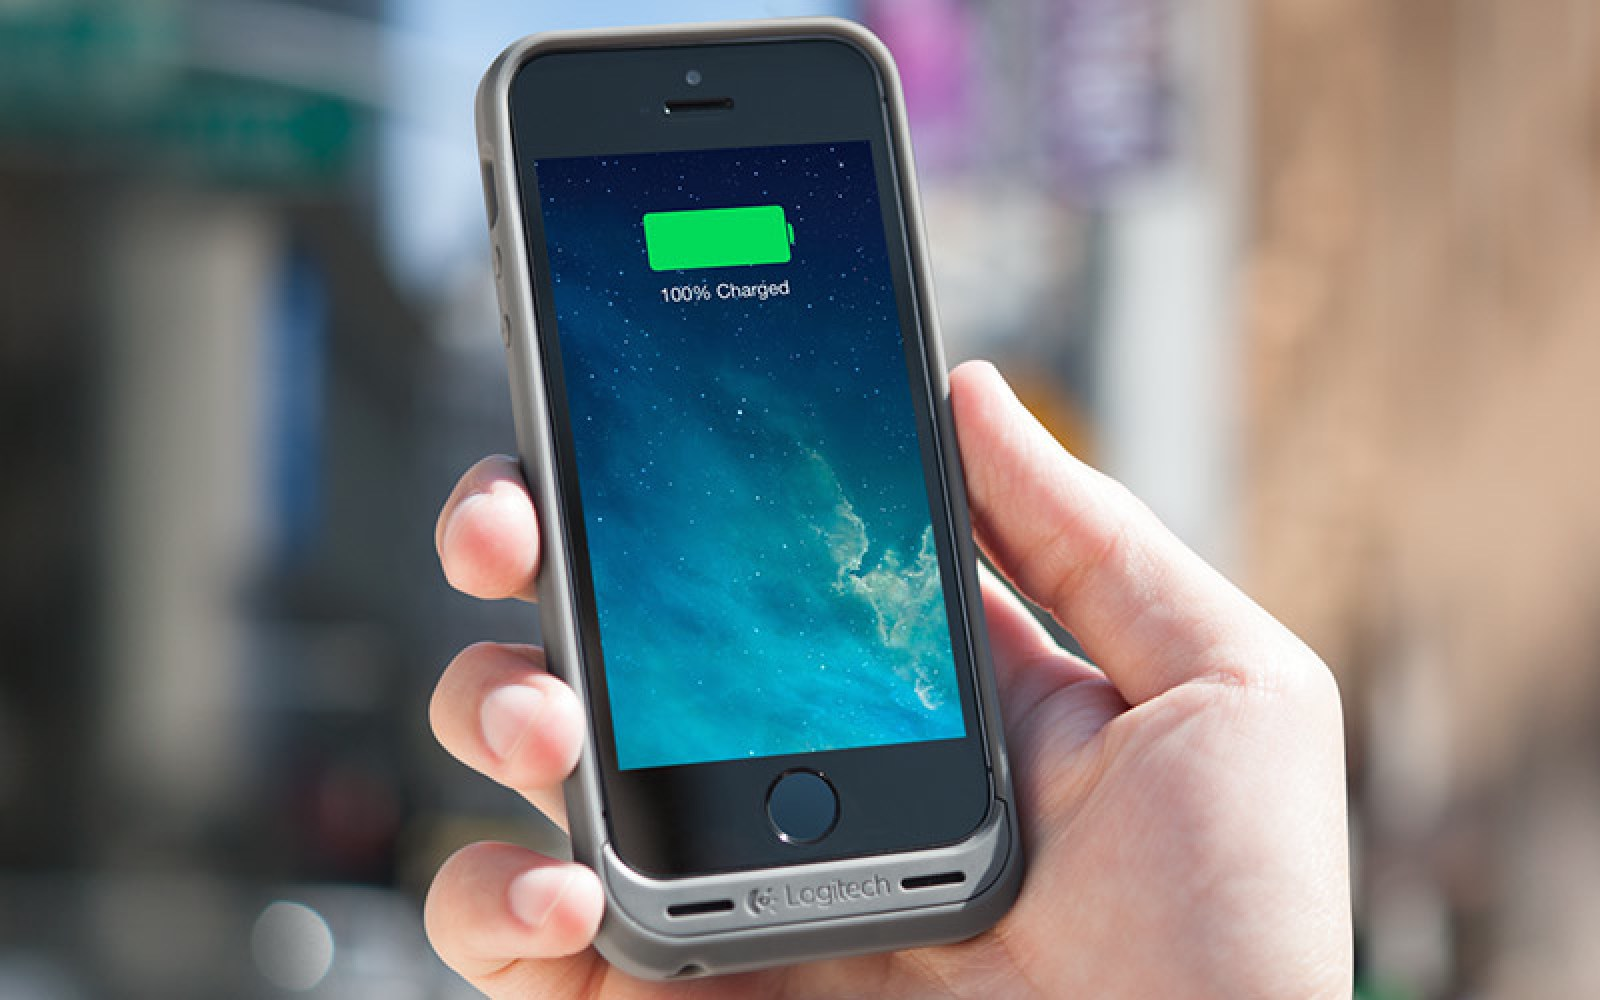 Logitech's new iPhone/Galaxy S5 battery cases offer easy magnetic mounting and military-grade protection